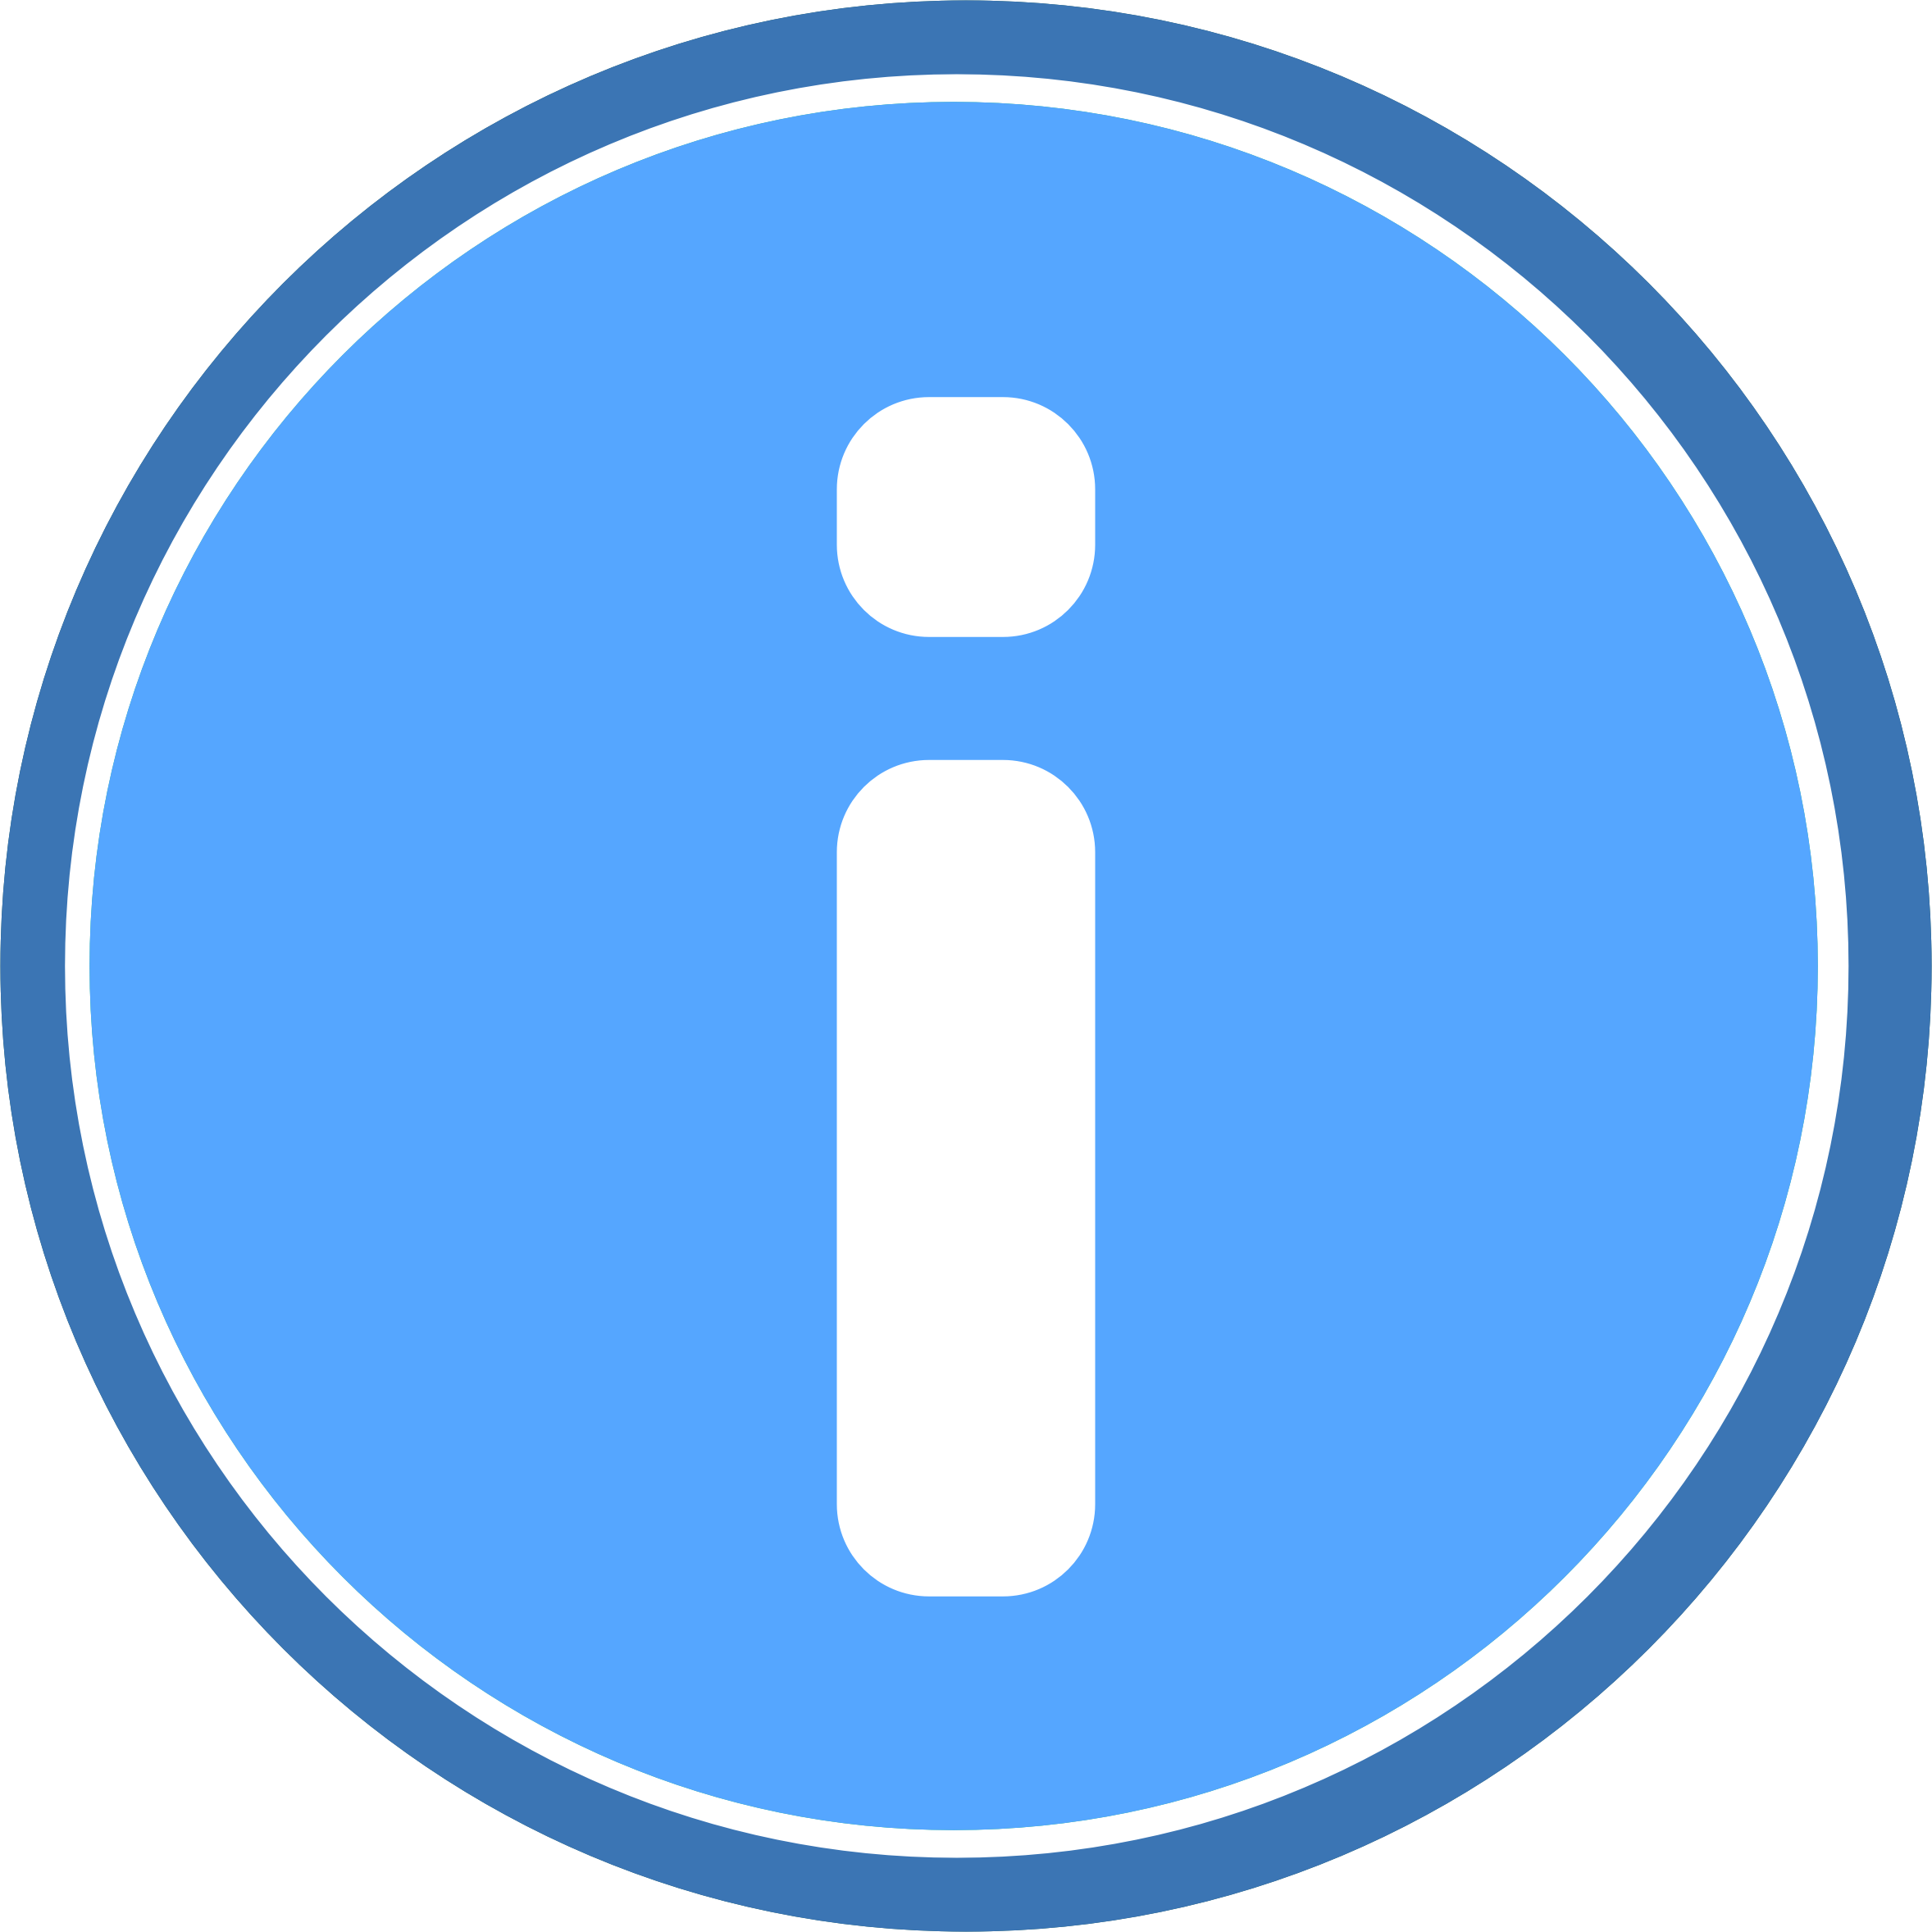 Info Icon (rounded) by DaveMeyer